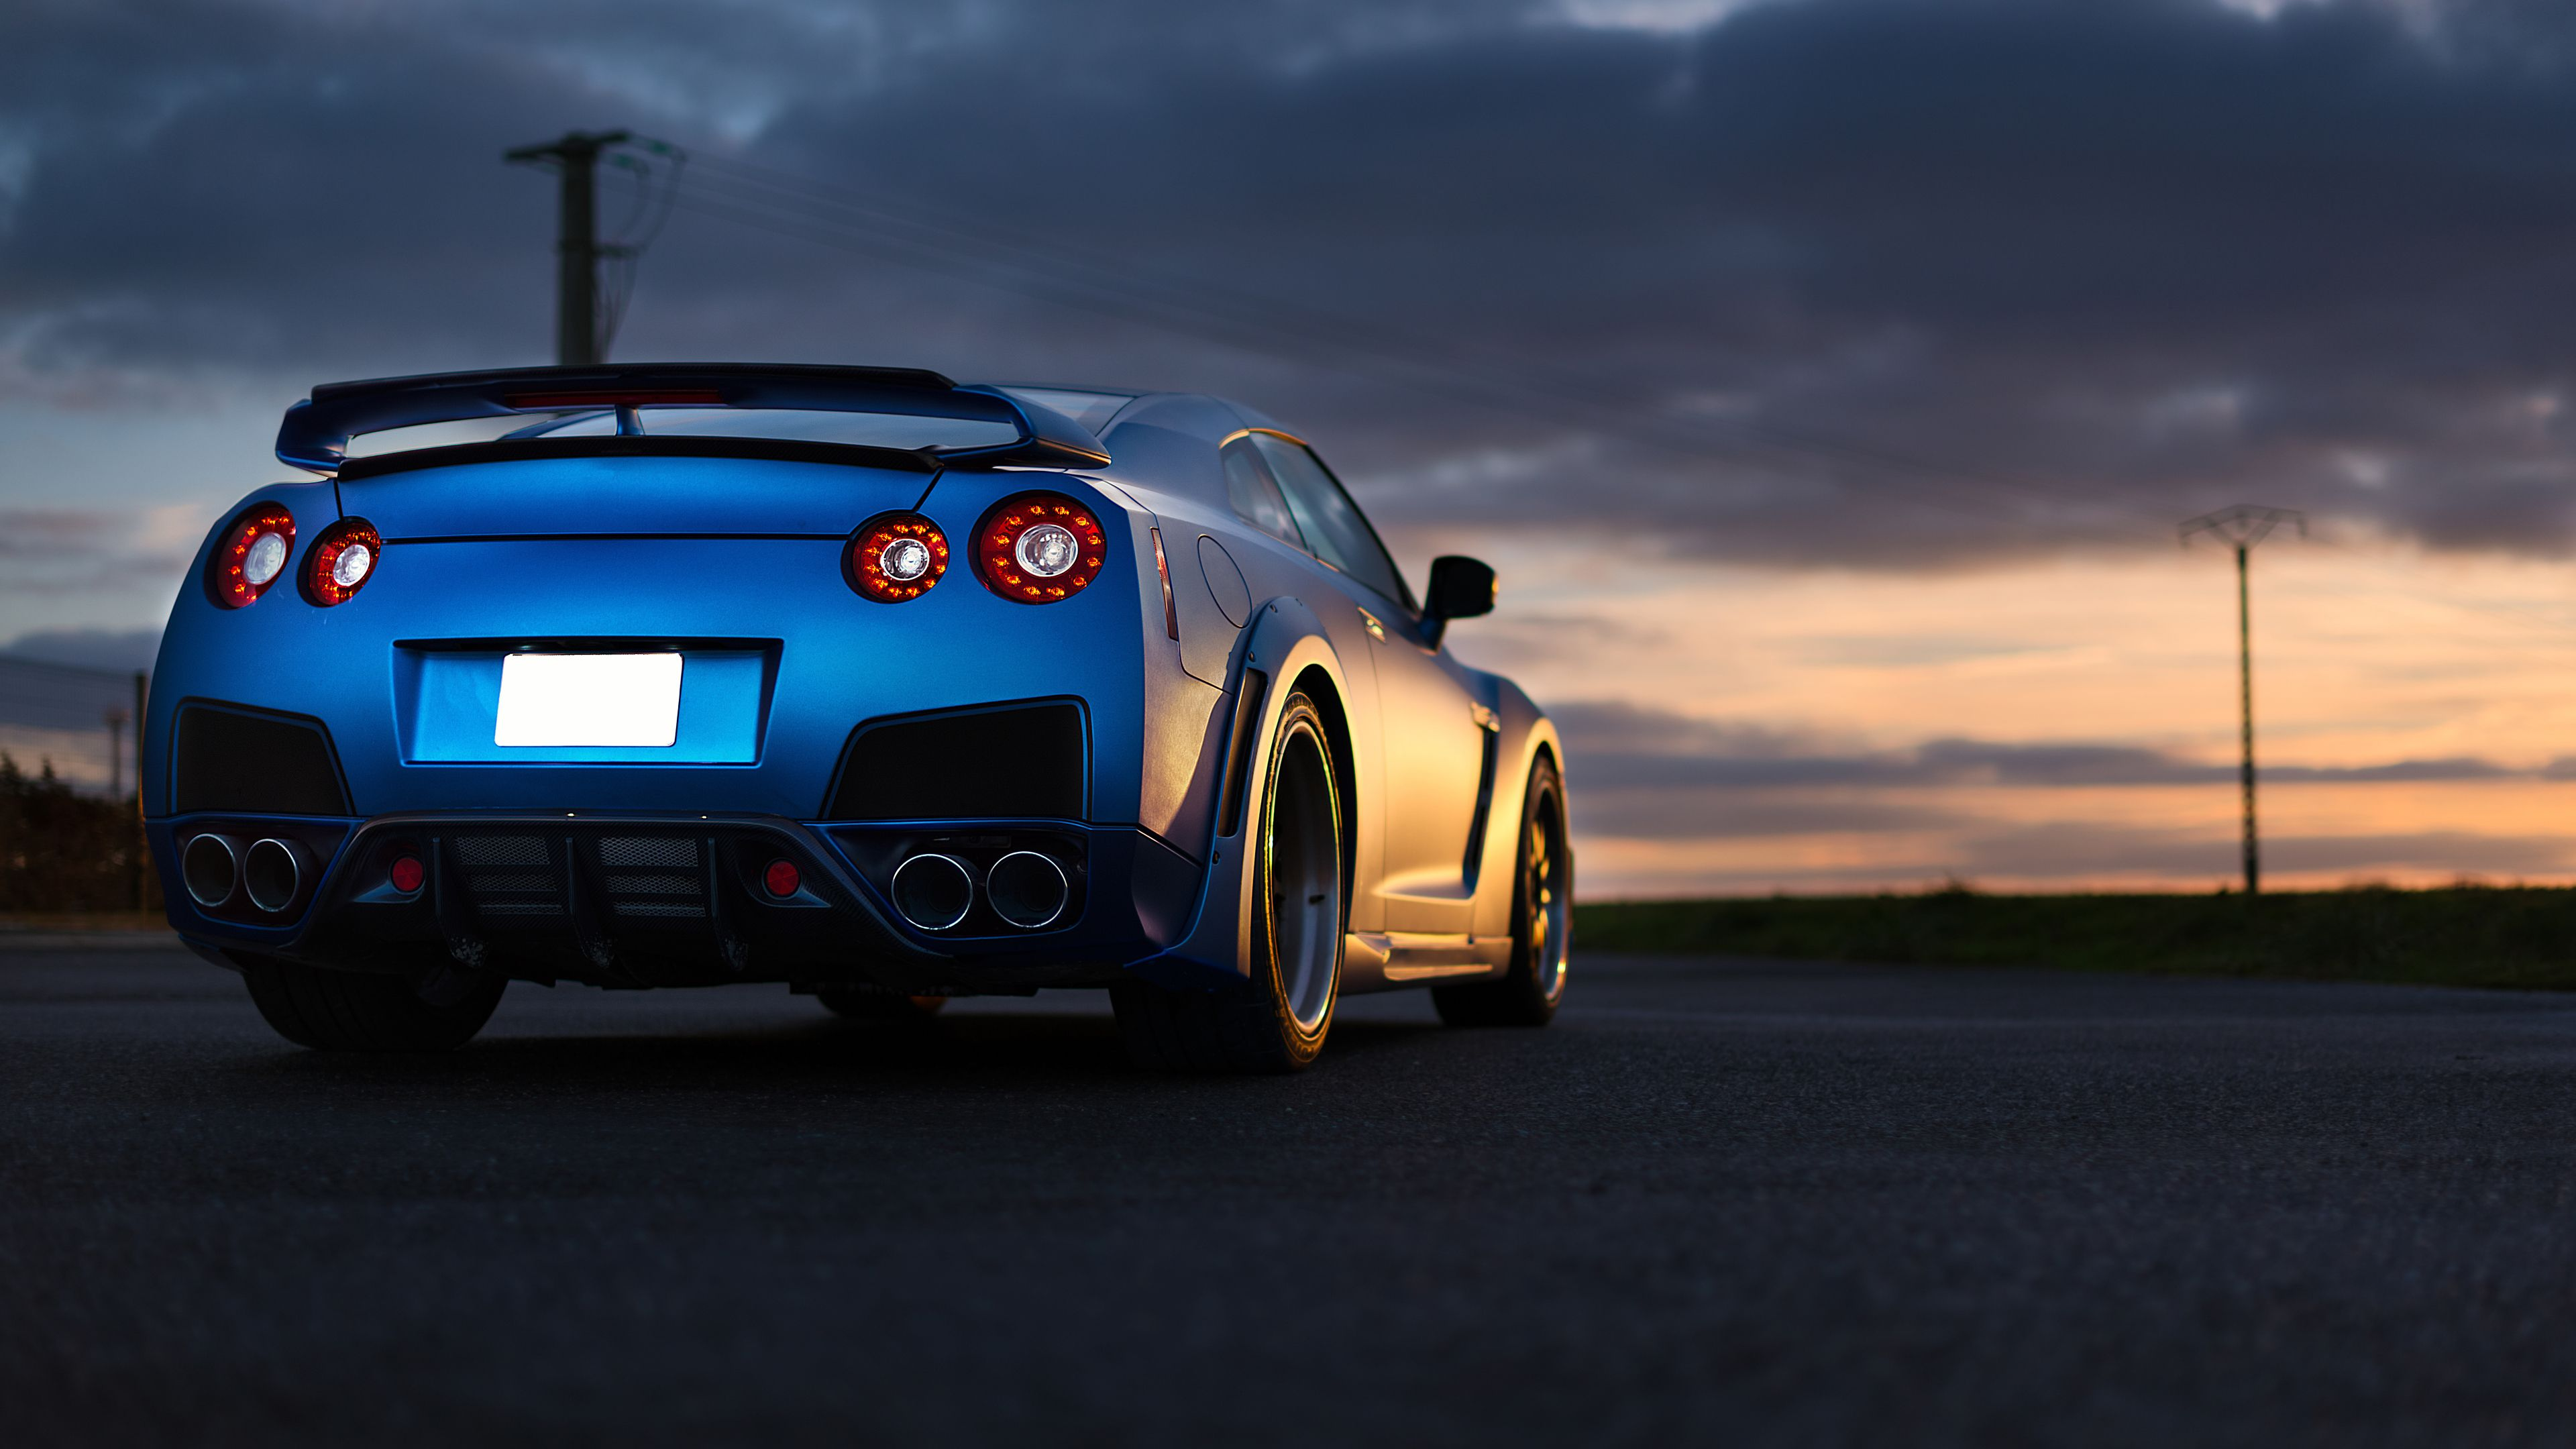 Wallpaper 4k Nissan Gtr 4k 4k Wallpapers 5k Wallpapers 8k